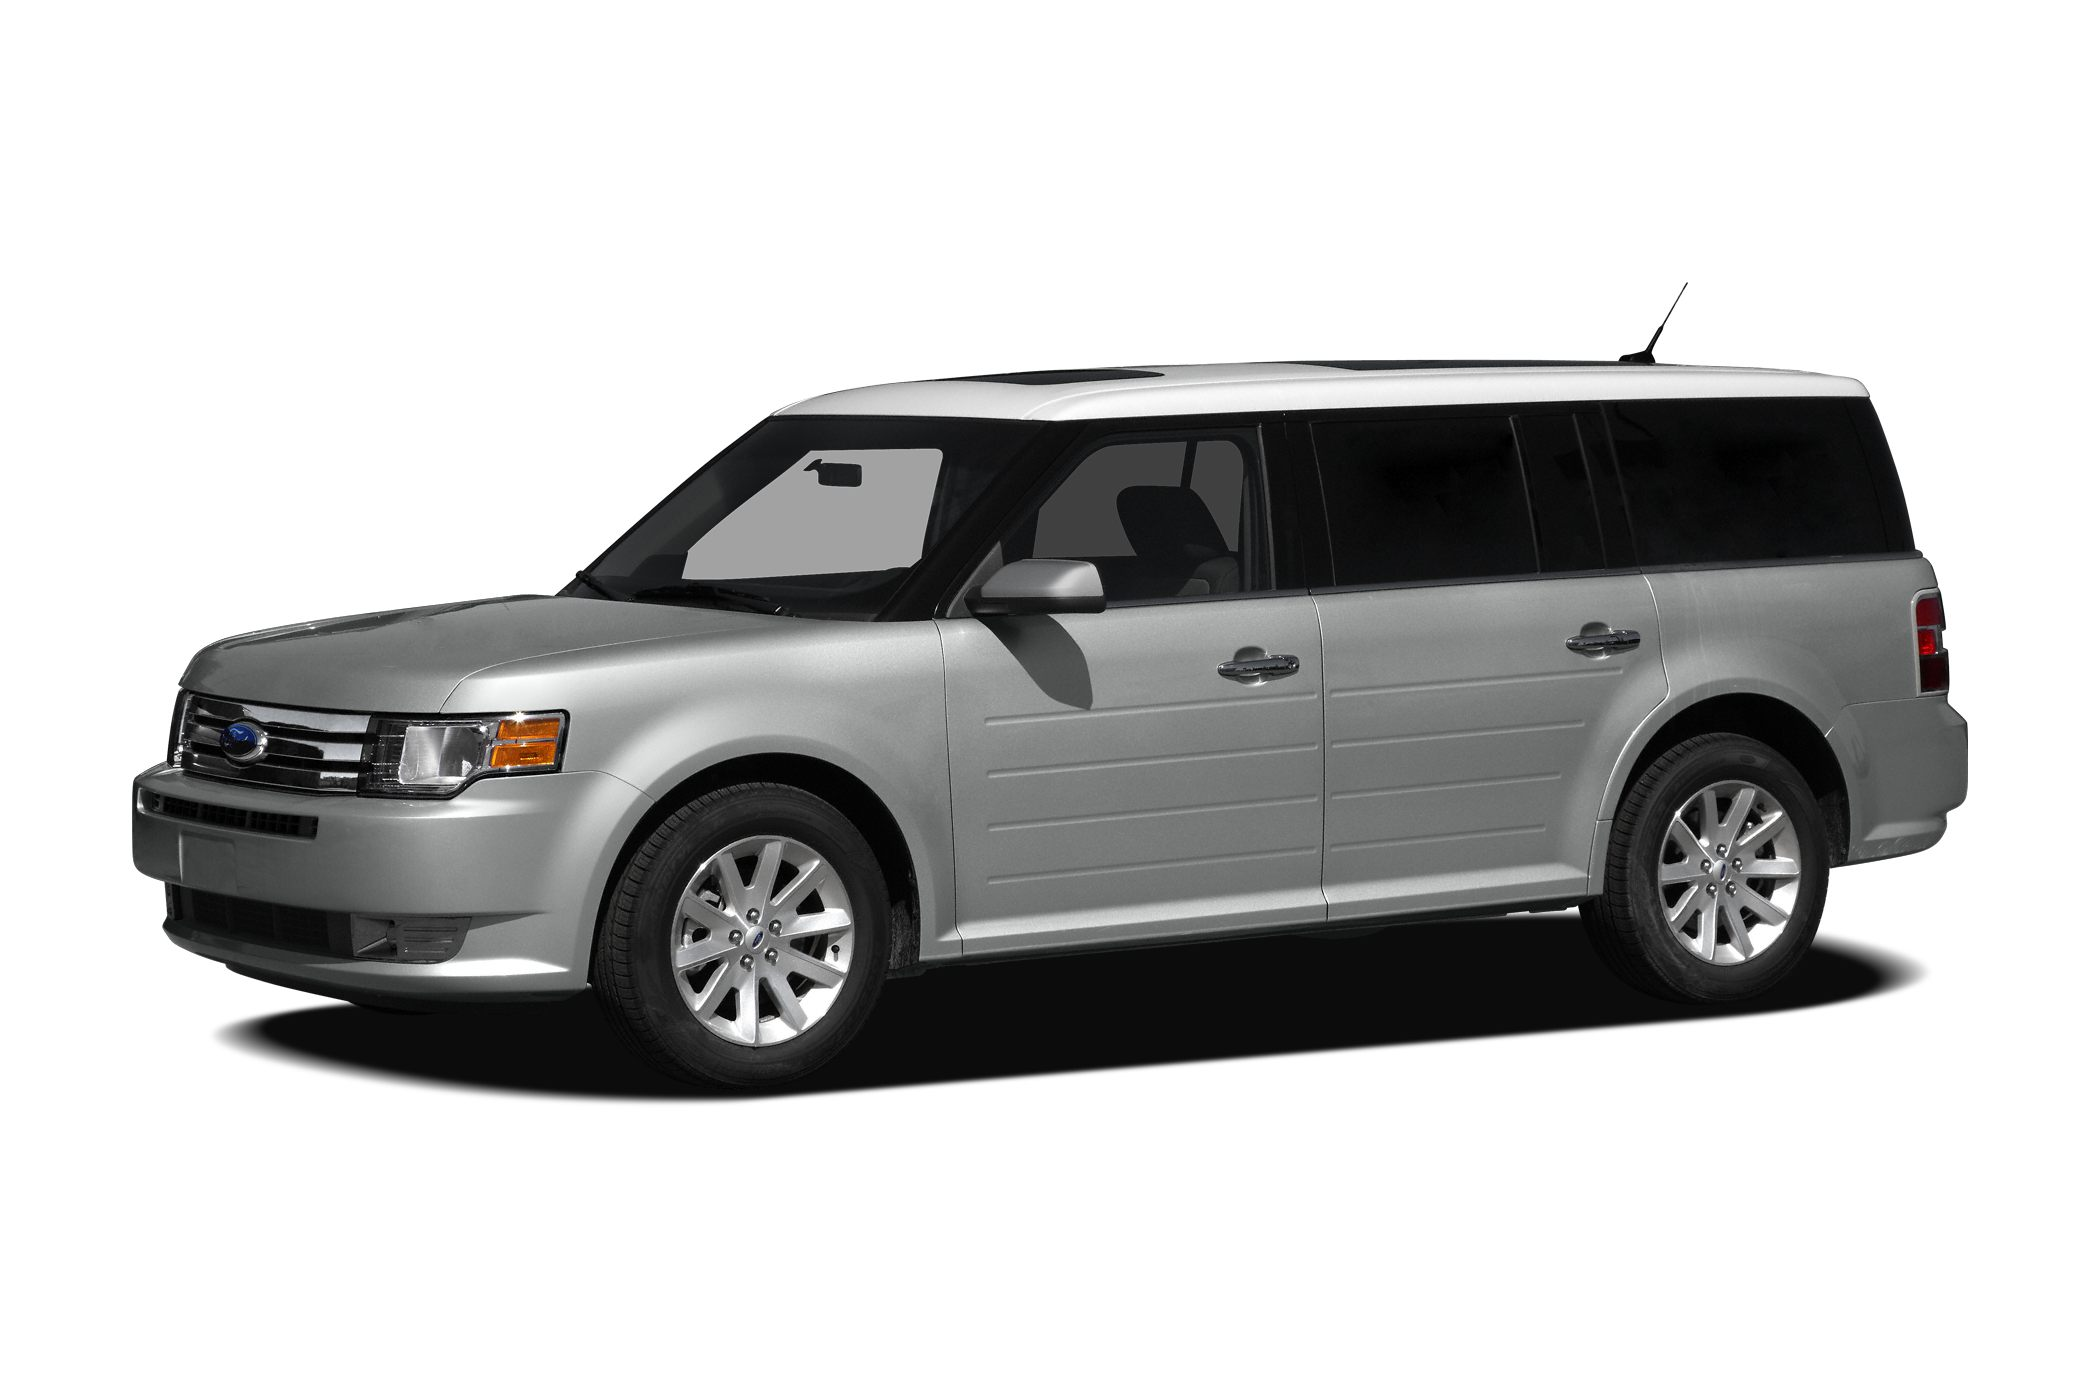 2009 Ford Flex Limited Certified by CARFAX - ONE OWNER GREEN TAG SPECIAL 110 PT INSPECTION 60